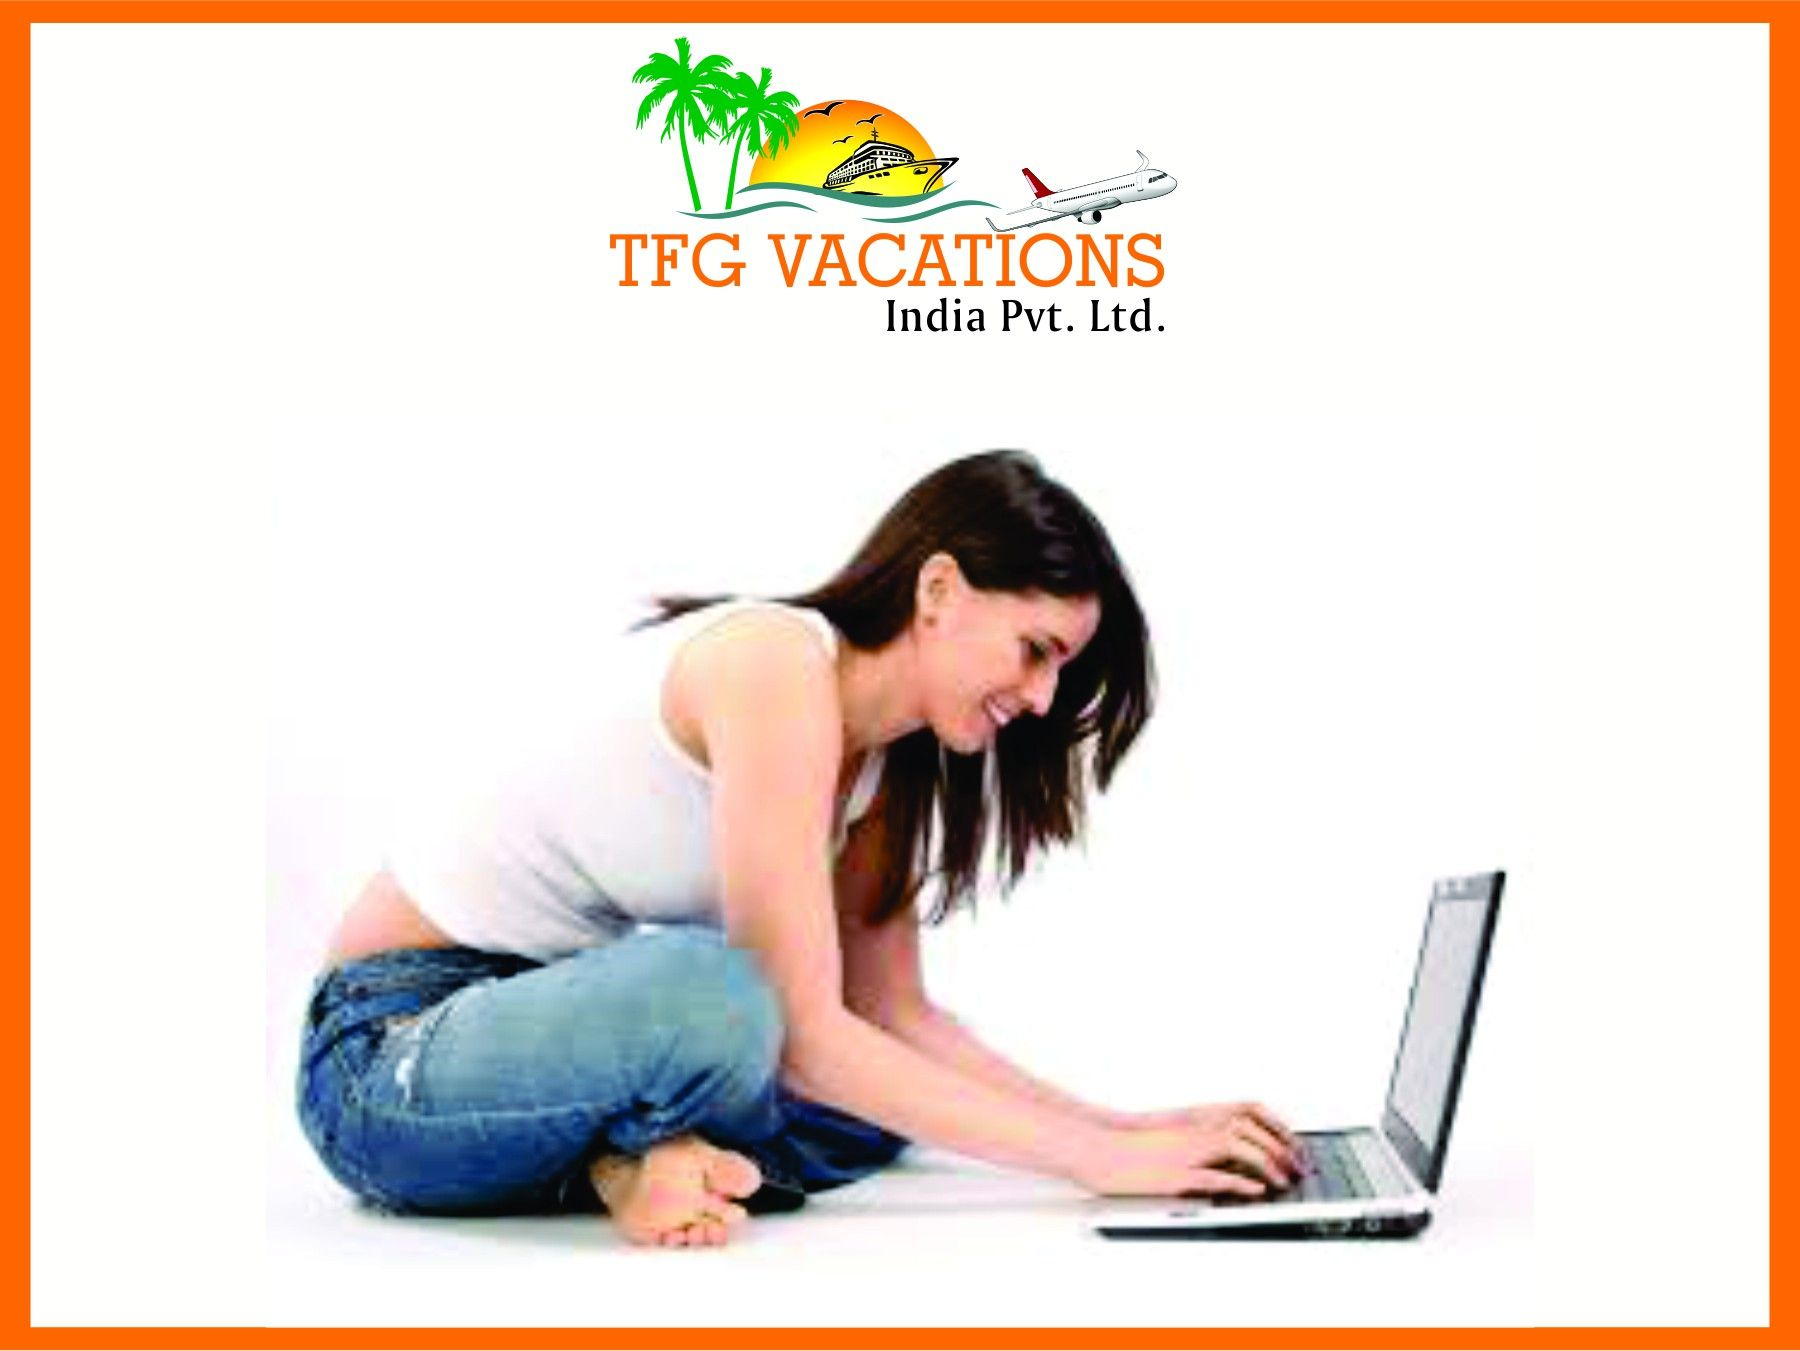 Online Promotion work in Tourism Company Vacancy For Online Marketing  Part time Home Based Jobs from TFG Vacations India Pvt. Ltd. TFG Vacations, an ISO certified company by minority of corporate affairs is an established name in Travel and Tourism indus